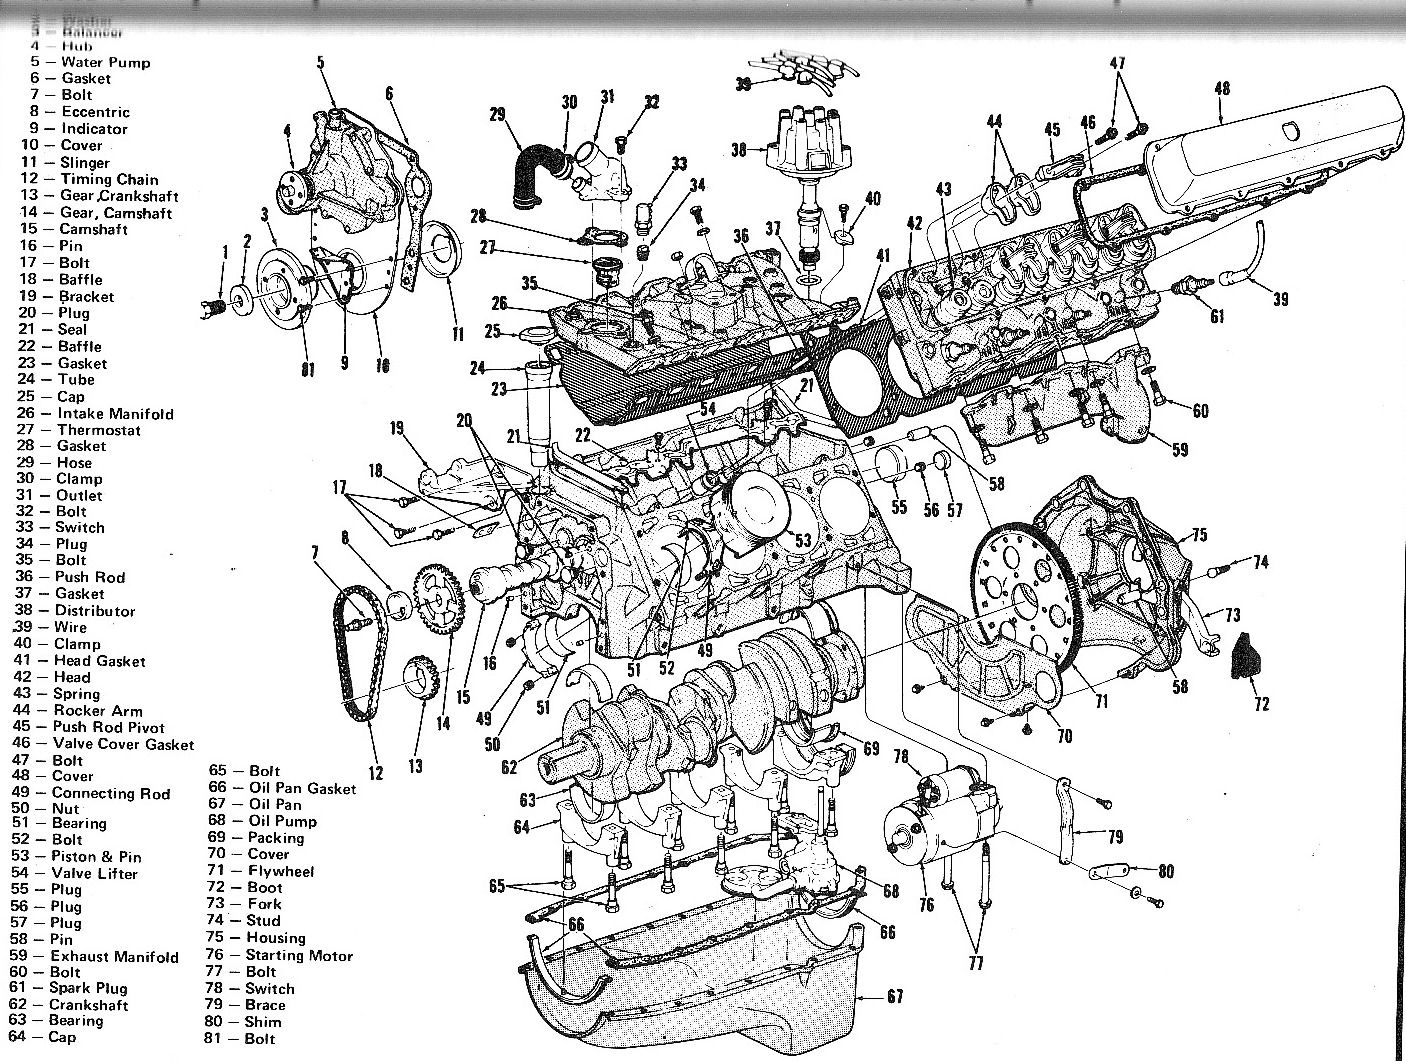 hight resolution of complete v 8 engine diagram car stuff diagram mustang chevy cars